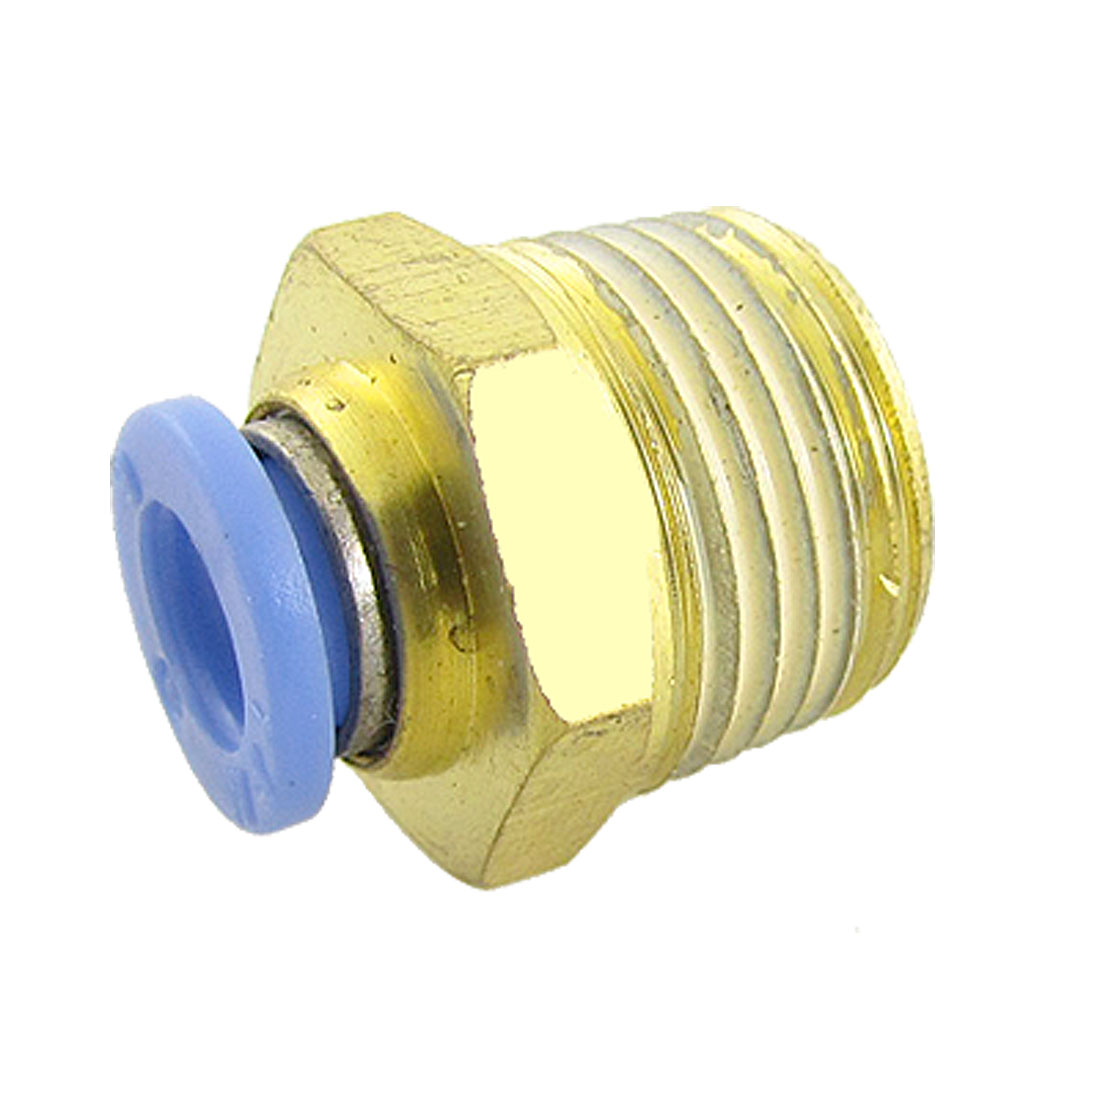 12mm Thread 4mm Push In Tube One Touch Fitting Connector